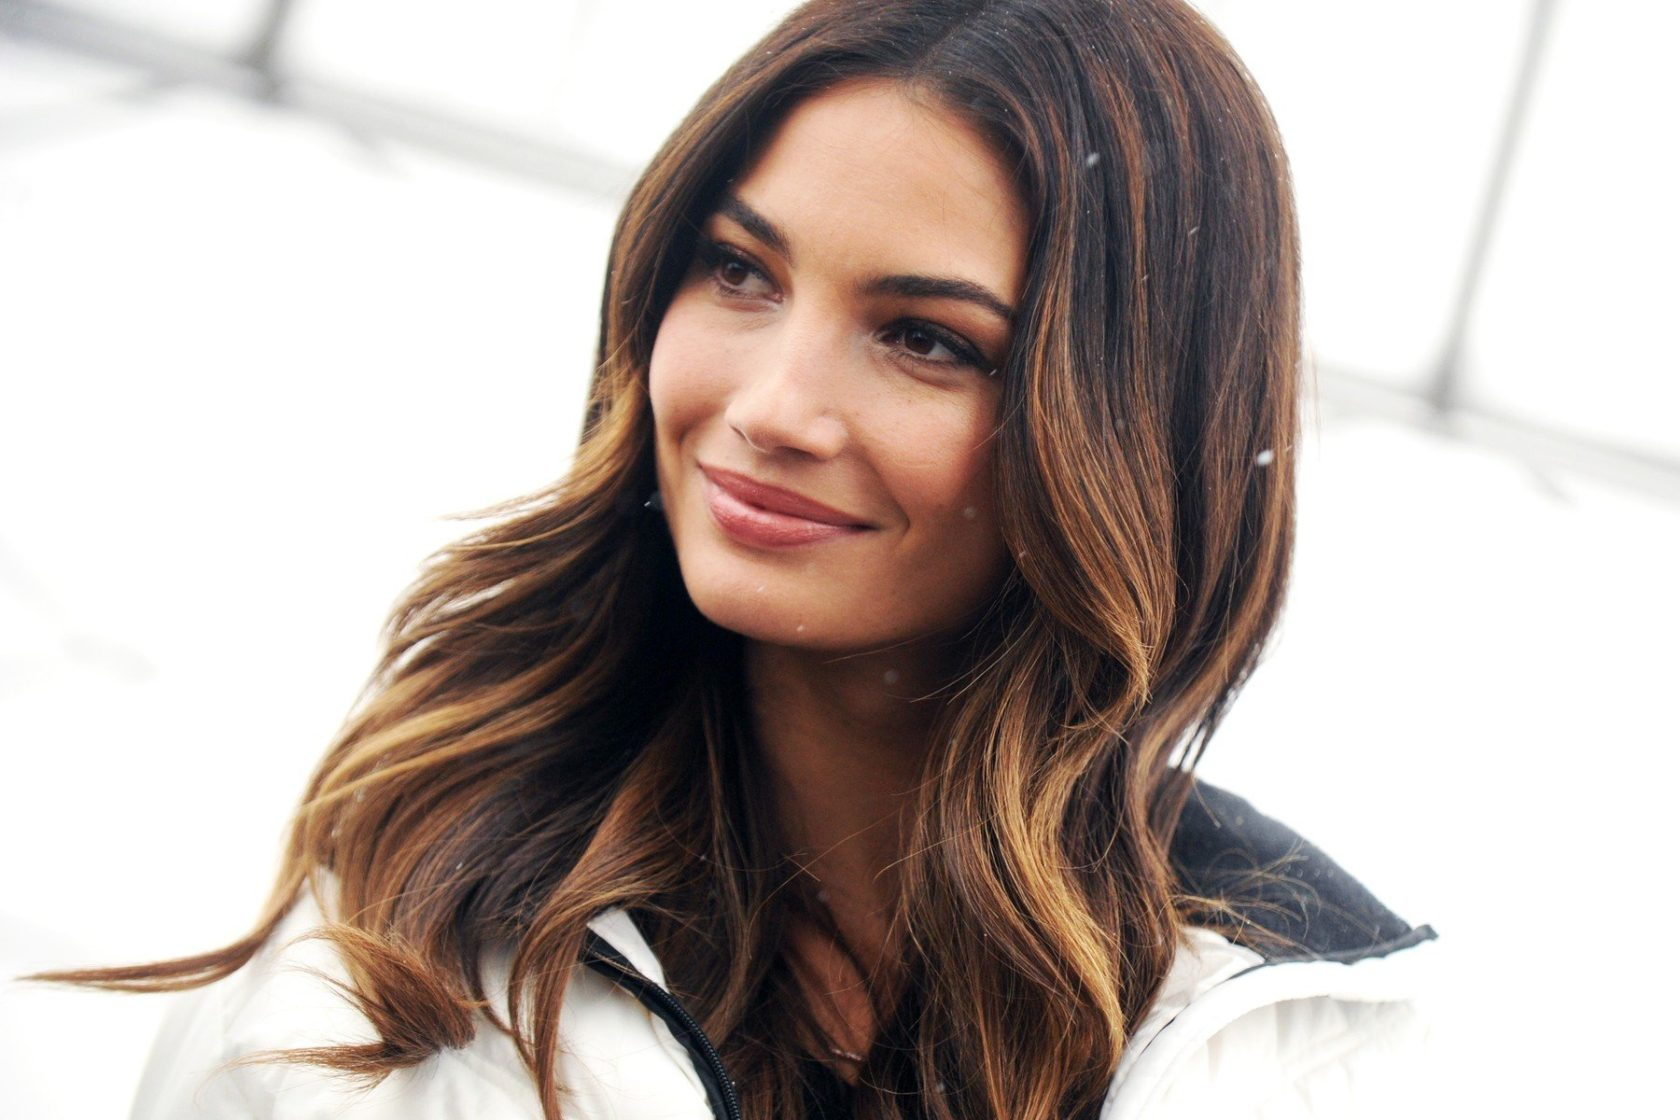 Dec. 10, 2013 - New York, New York, USA - Photocall with Lily Aldridge at the Empire State Building to celebrate the airing of the 2013 Victoria's Secret Fashion Show on CBS. New York, 10.12.2013, Image: 179569843, License: Rights-managed, Restrictions: , Model Release: no, Credit line: Profimedia, Zuma Press - Archives